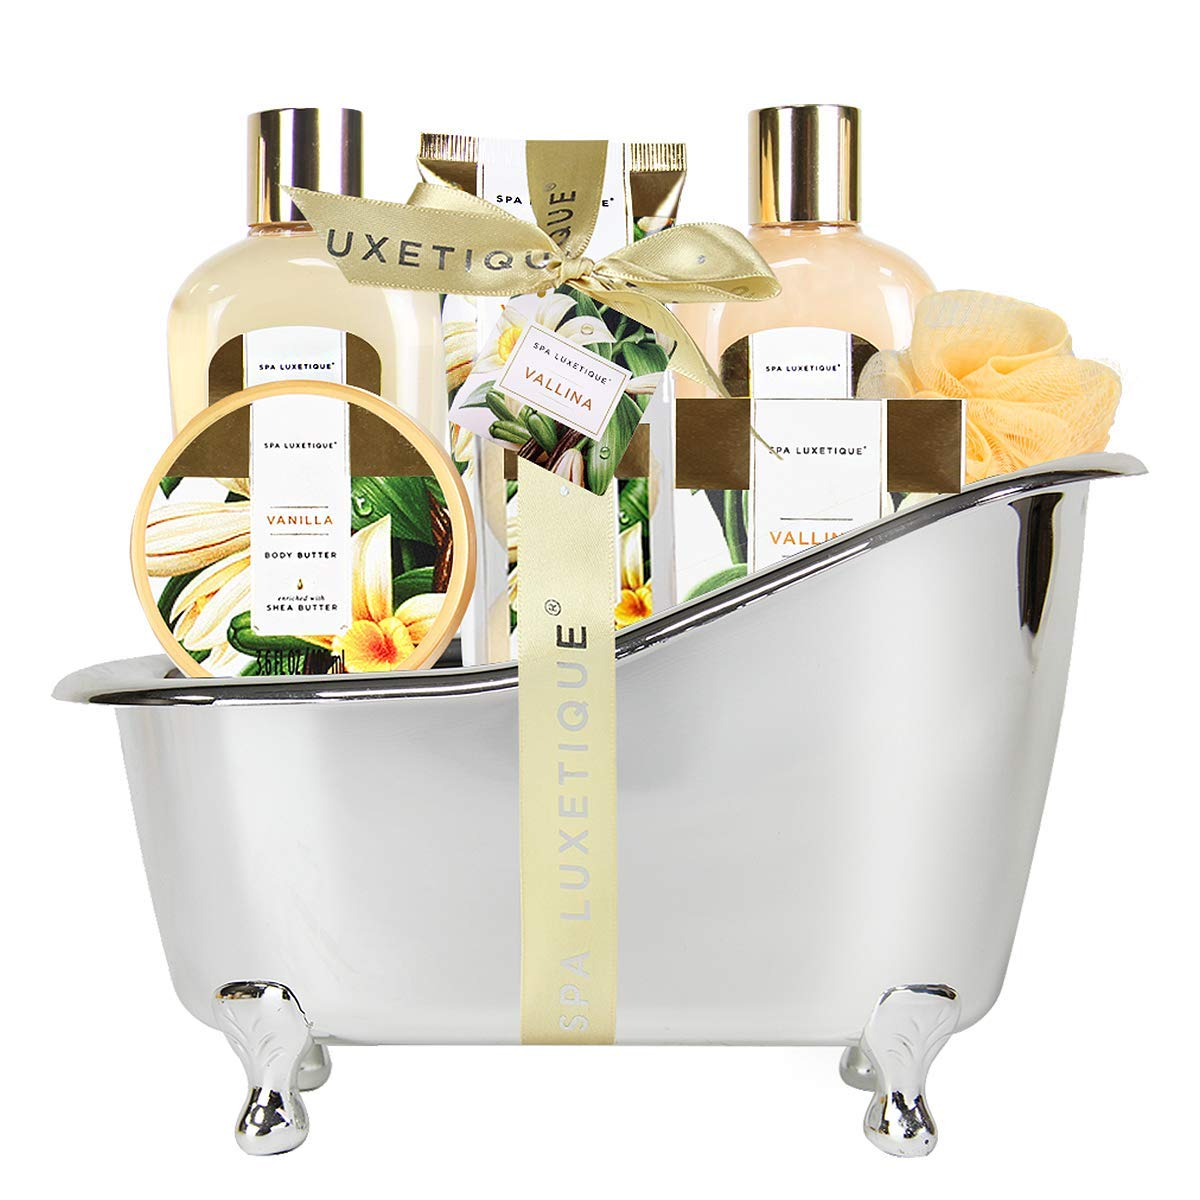 Spa Luxetique Spa Gift Basket, Bath and Body Gift Set, Bath Sets for Women Gift, Luxury 8 Pcs Home Bath Set Includes Body Lotion, Bath Bombs, Bath Salt, Best Gift Set for Women.